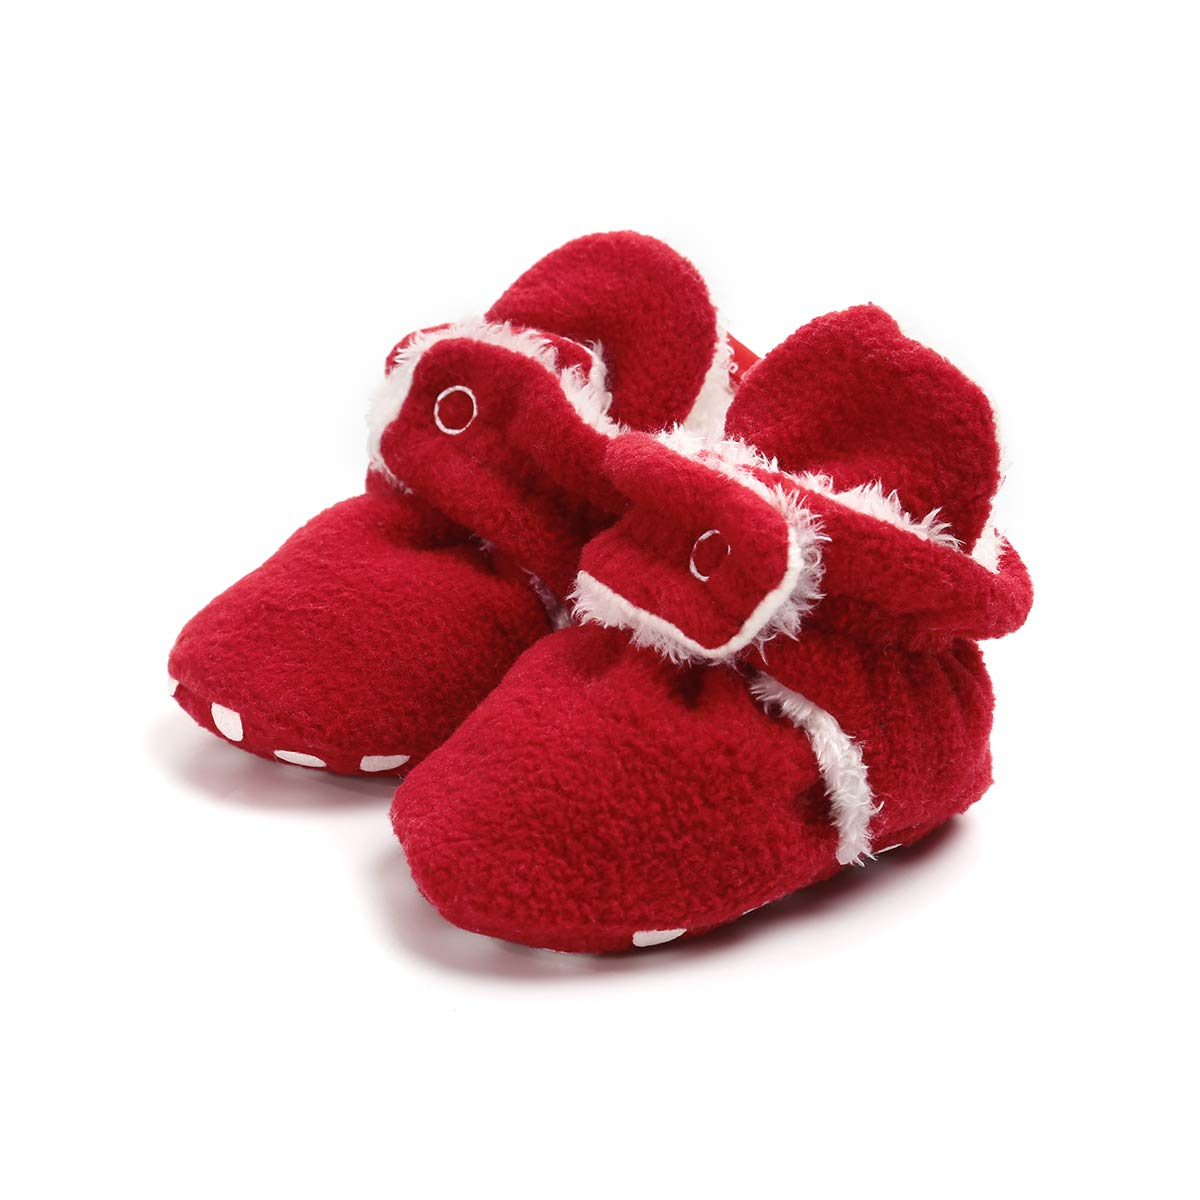 Save Beautiful Newborn Infant Baby Girls Boys Slippers Warm Fleece Boots First Walkers Shoes (0-6 Months, A-red)